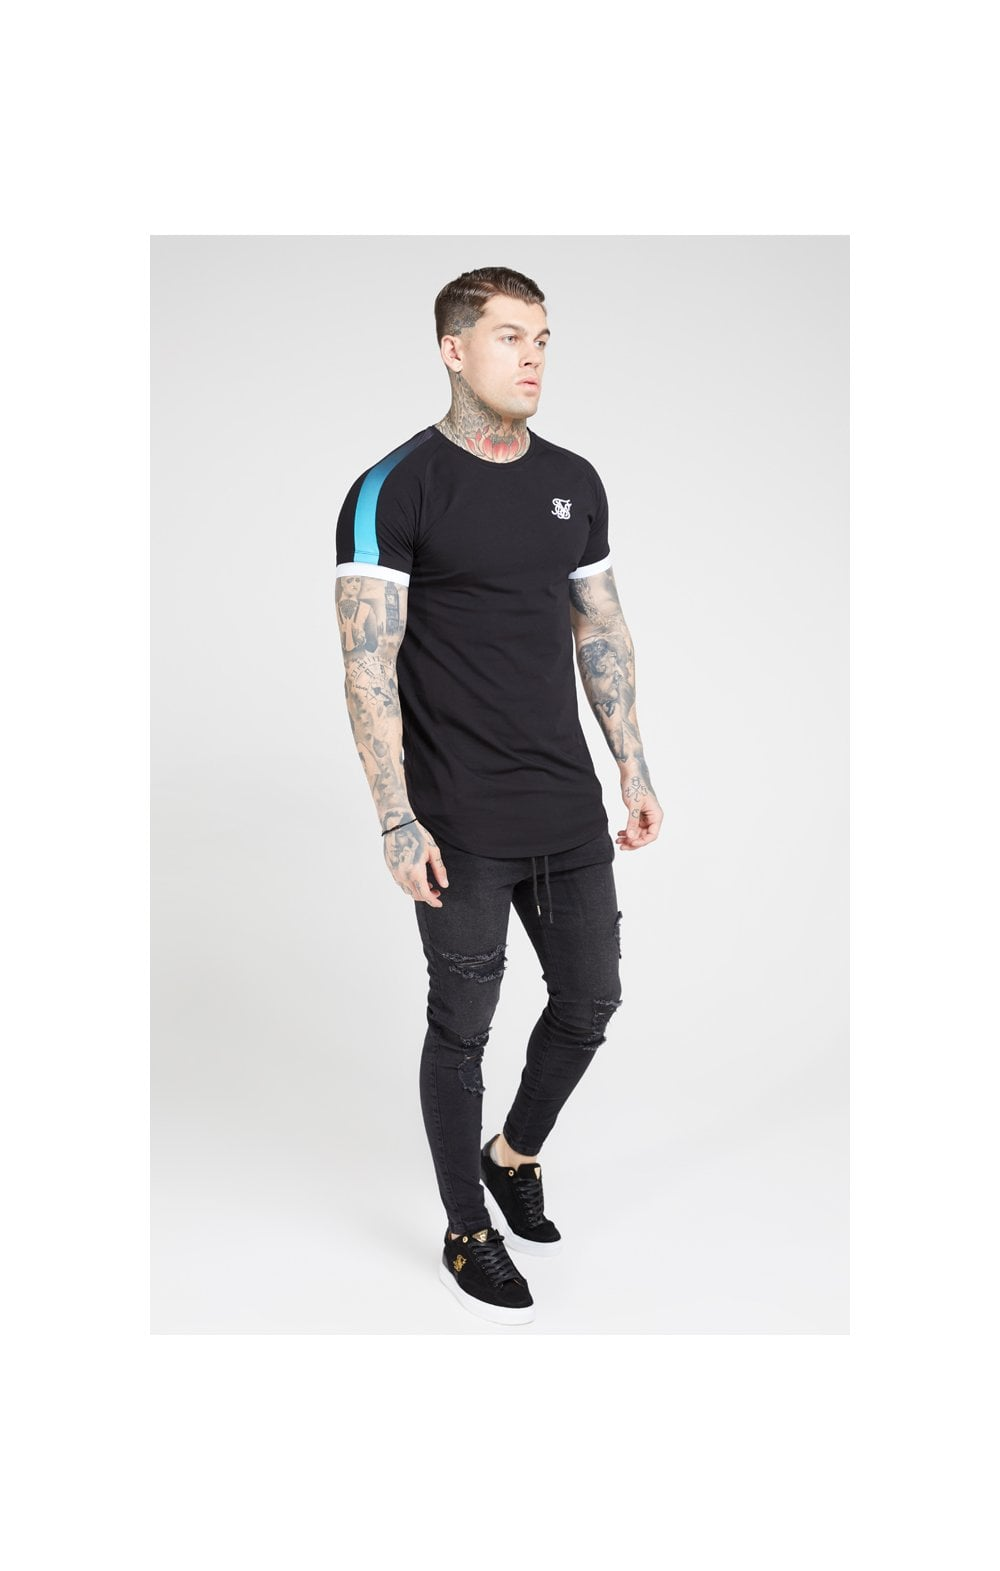 SikSilk S/S Inset Cuff Fade Panel Tech Tee – Black & Teal (2)